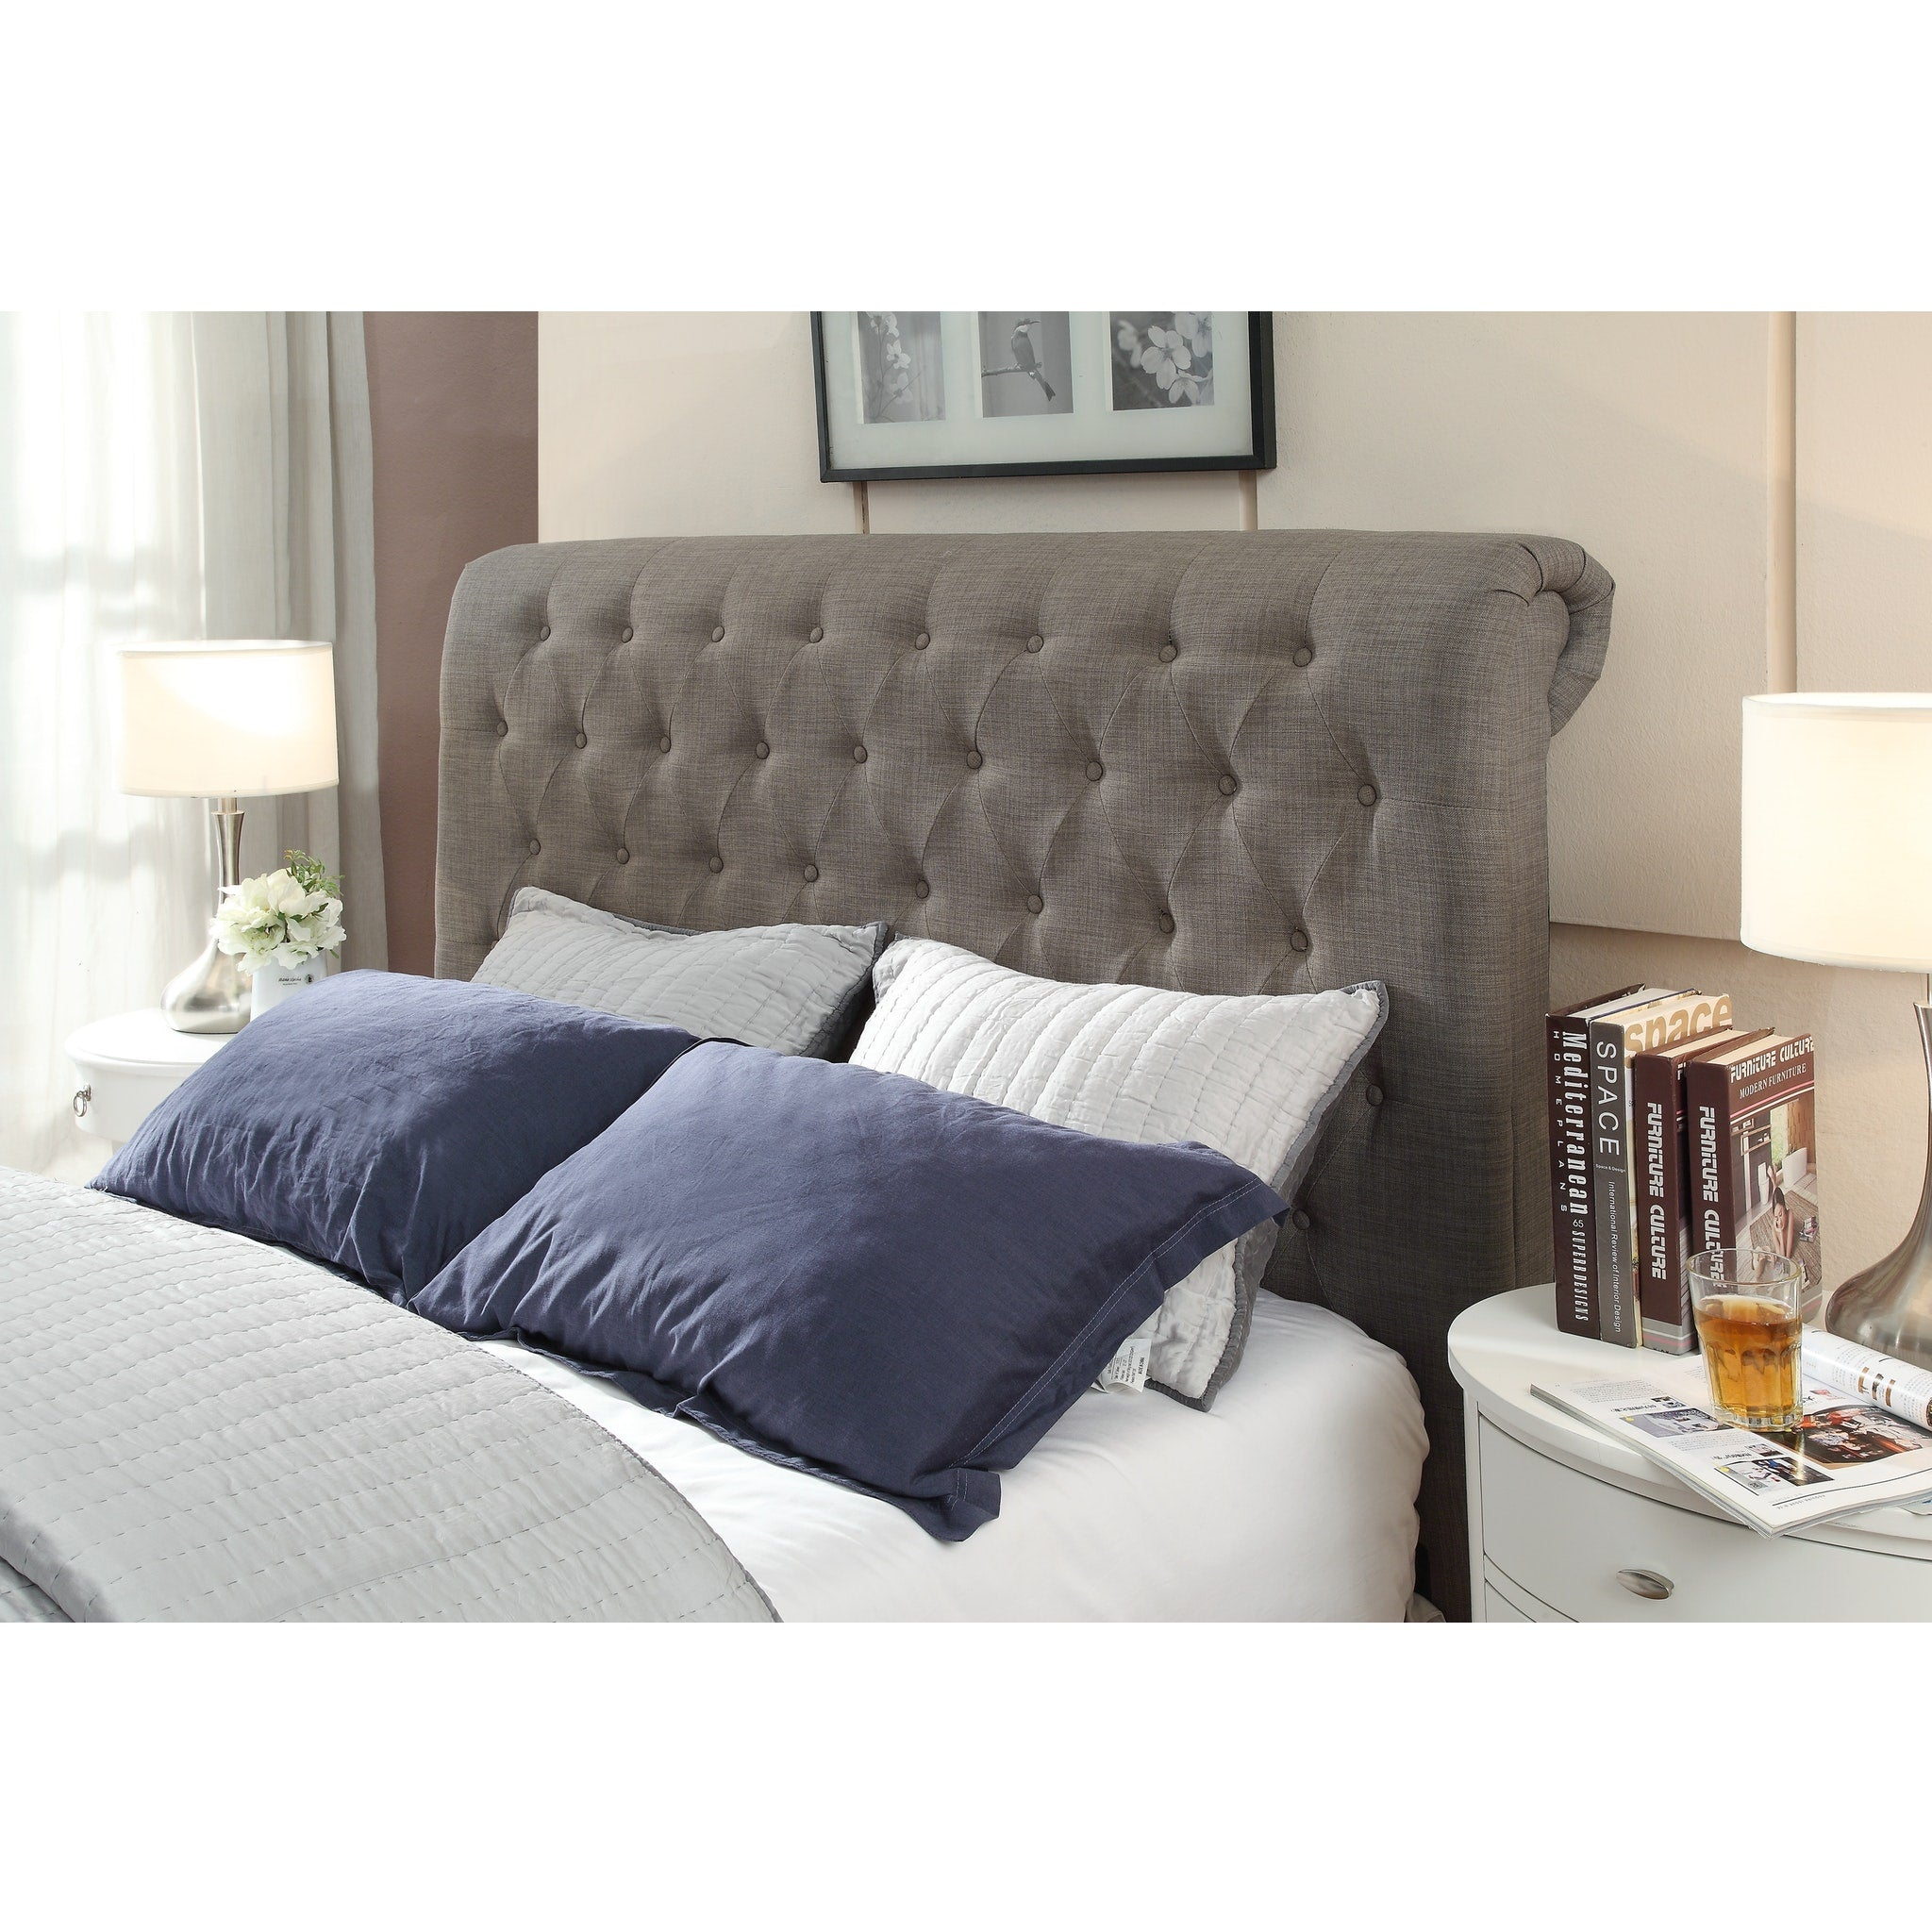 Royal King-size Tufted Headboard